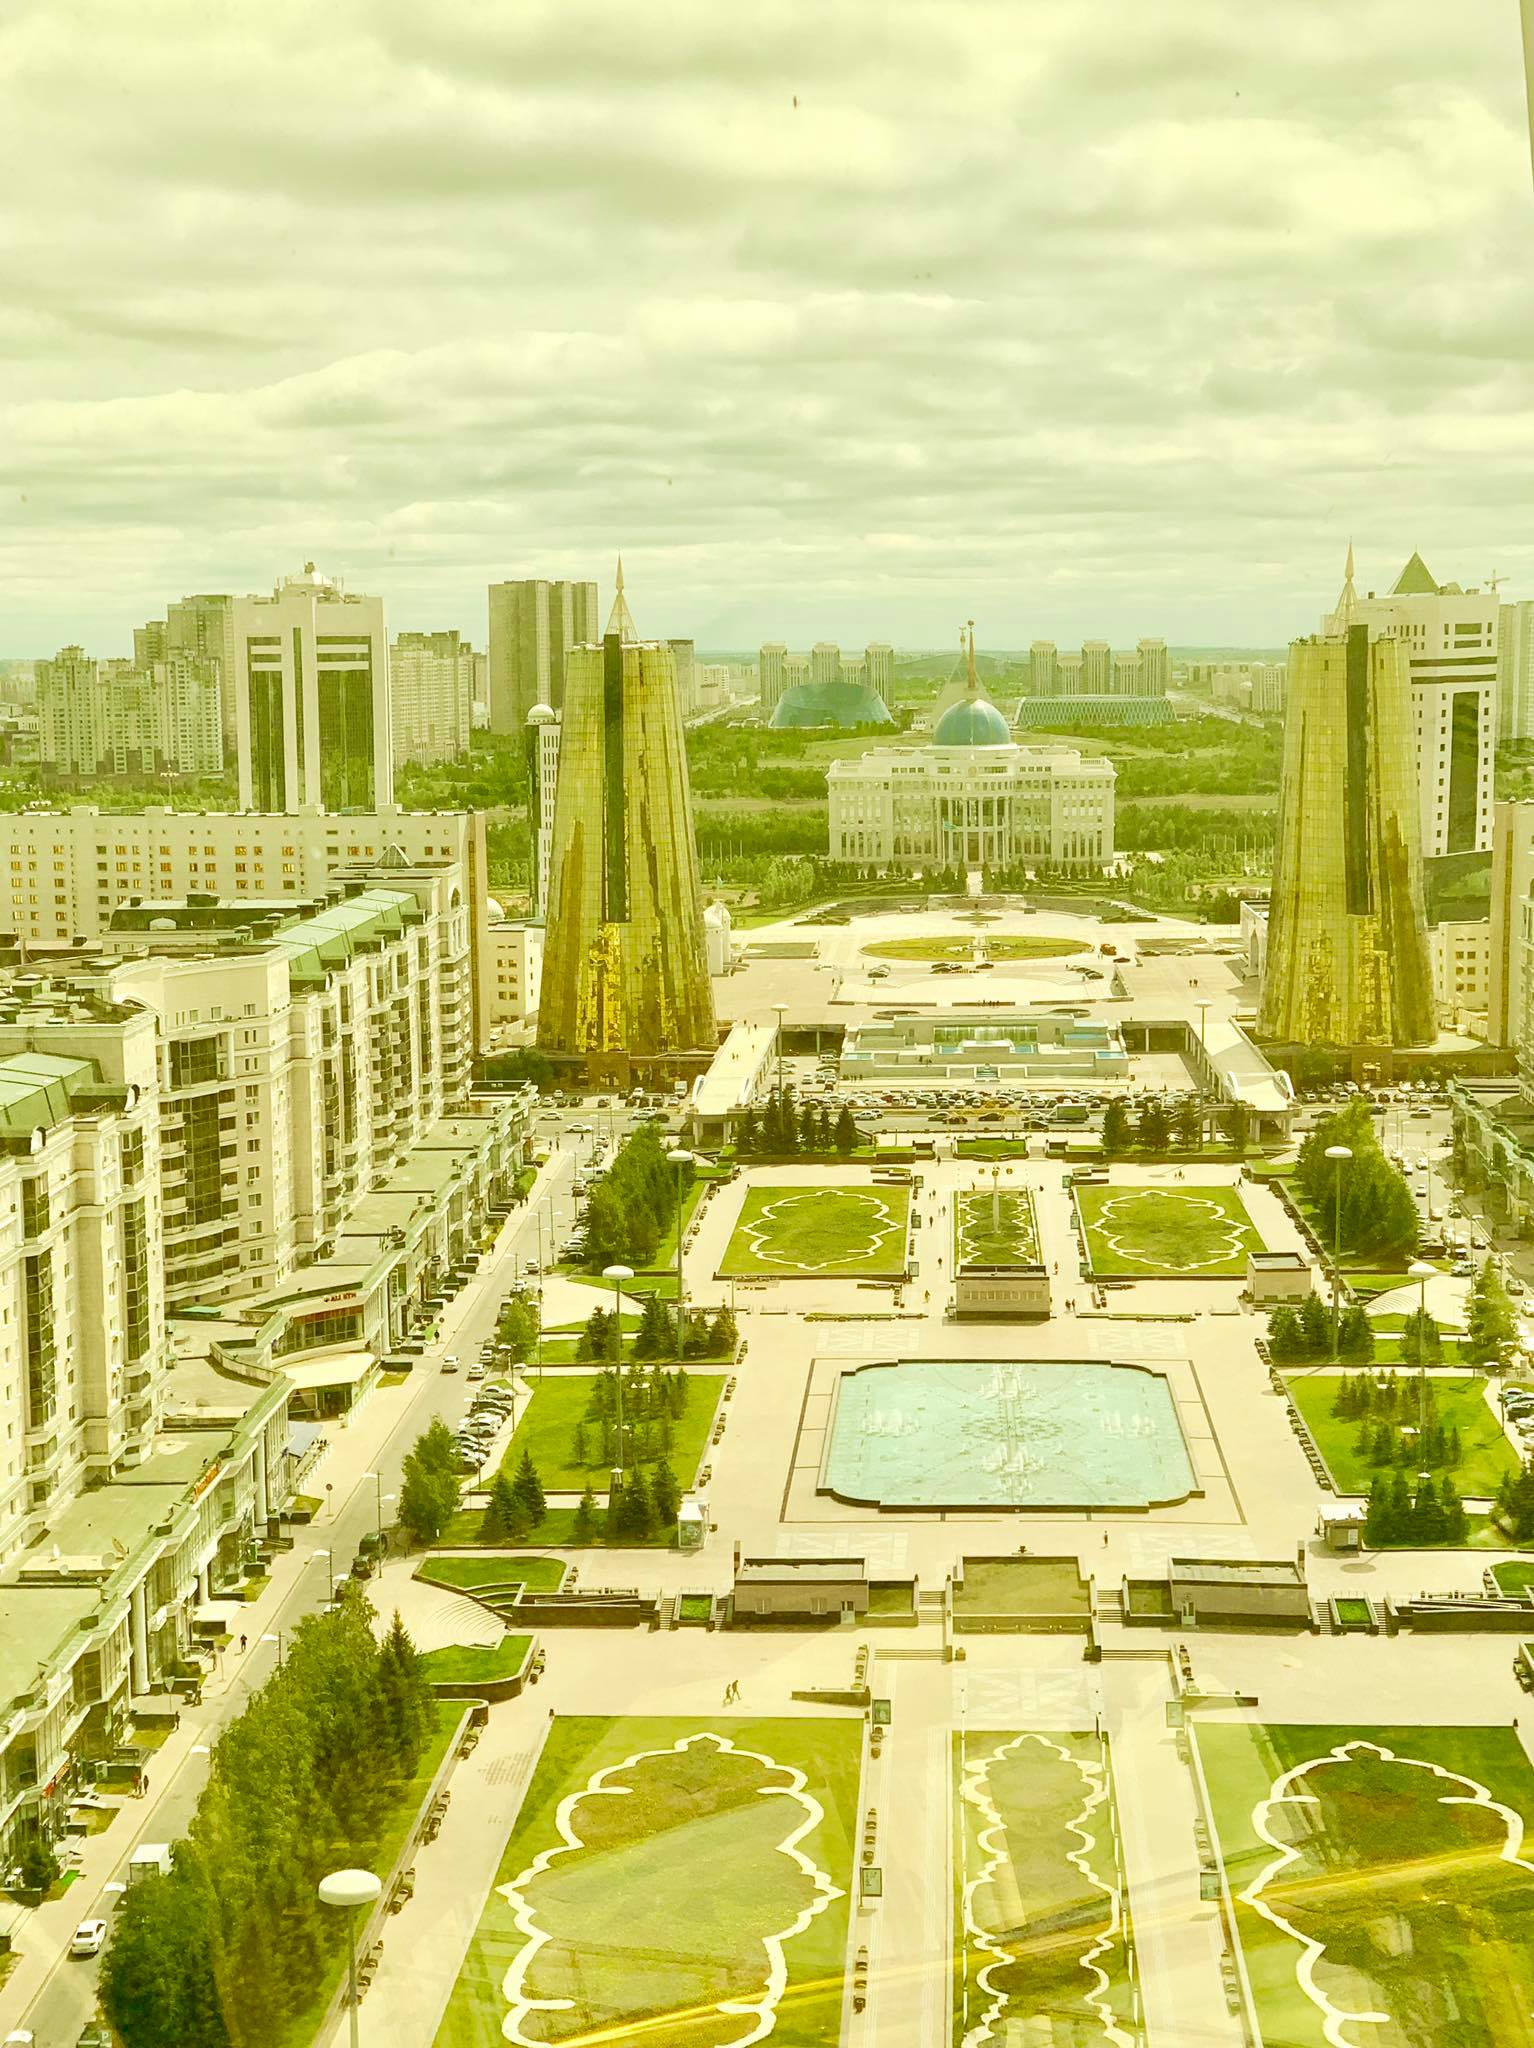 Kach Solo Travels in 2019 Nursultan  Astana - the City of the Future23.jpg